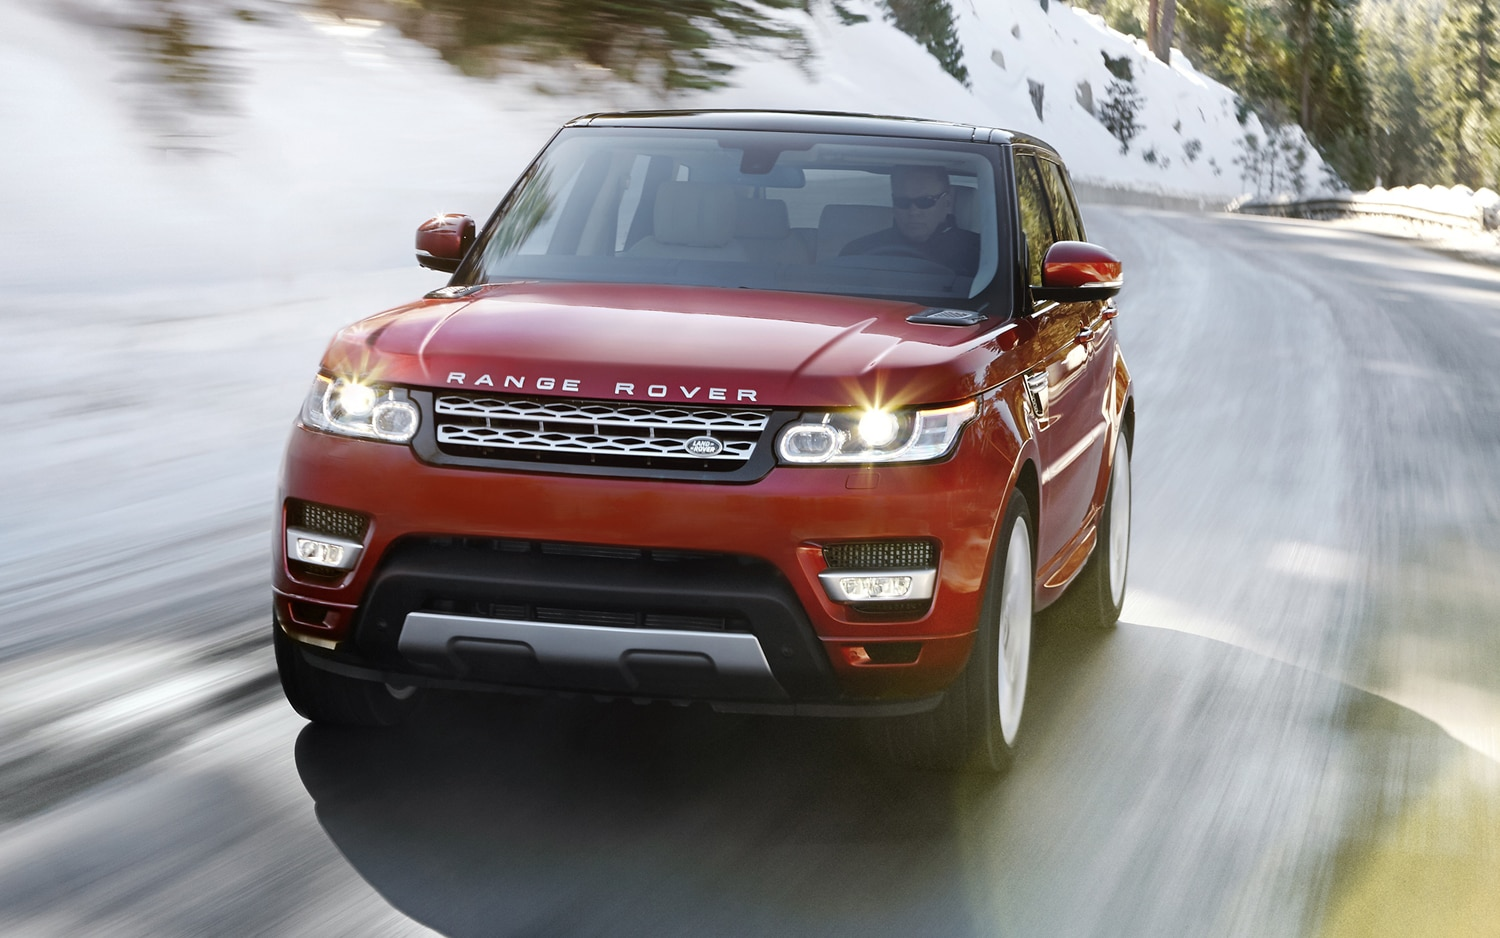 2014 Range Rover Sport Front View In Motion 051